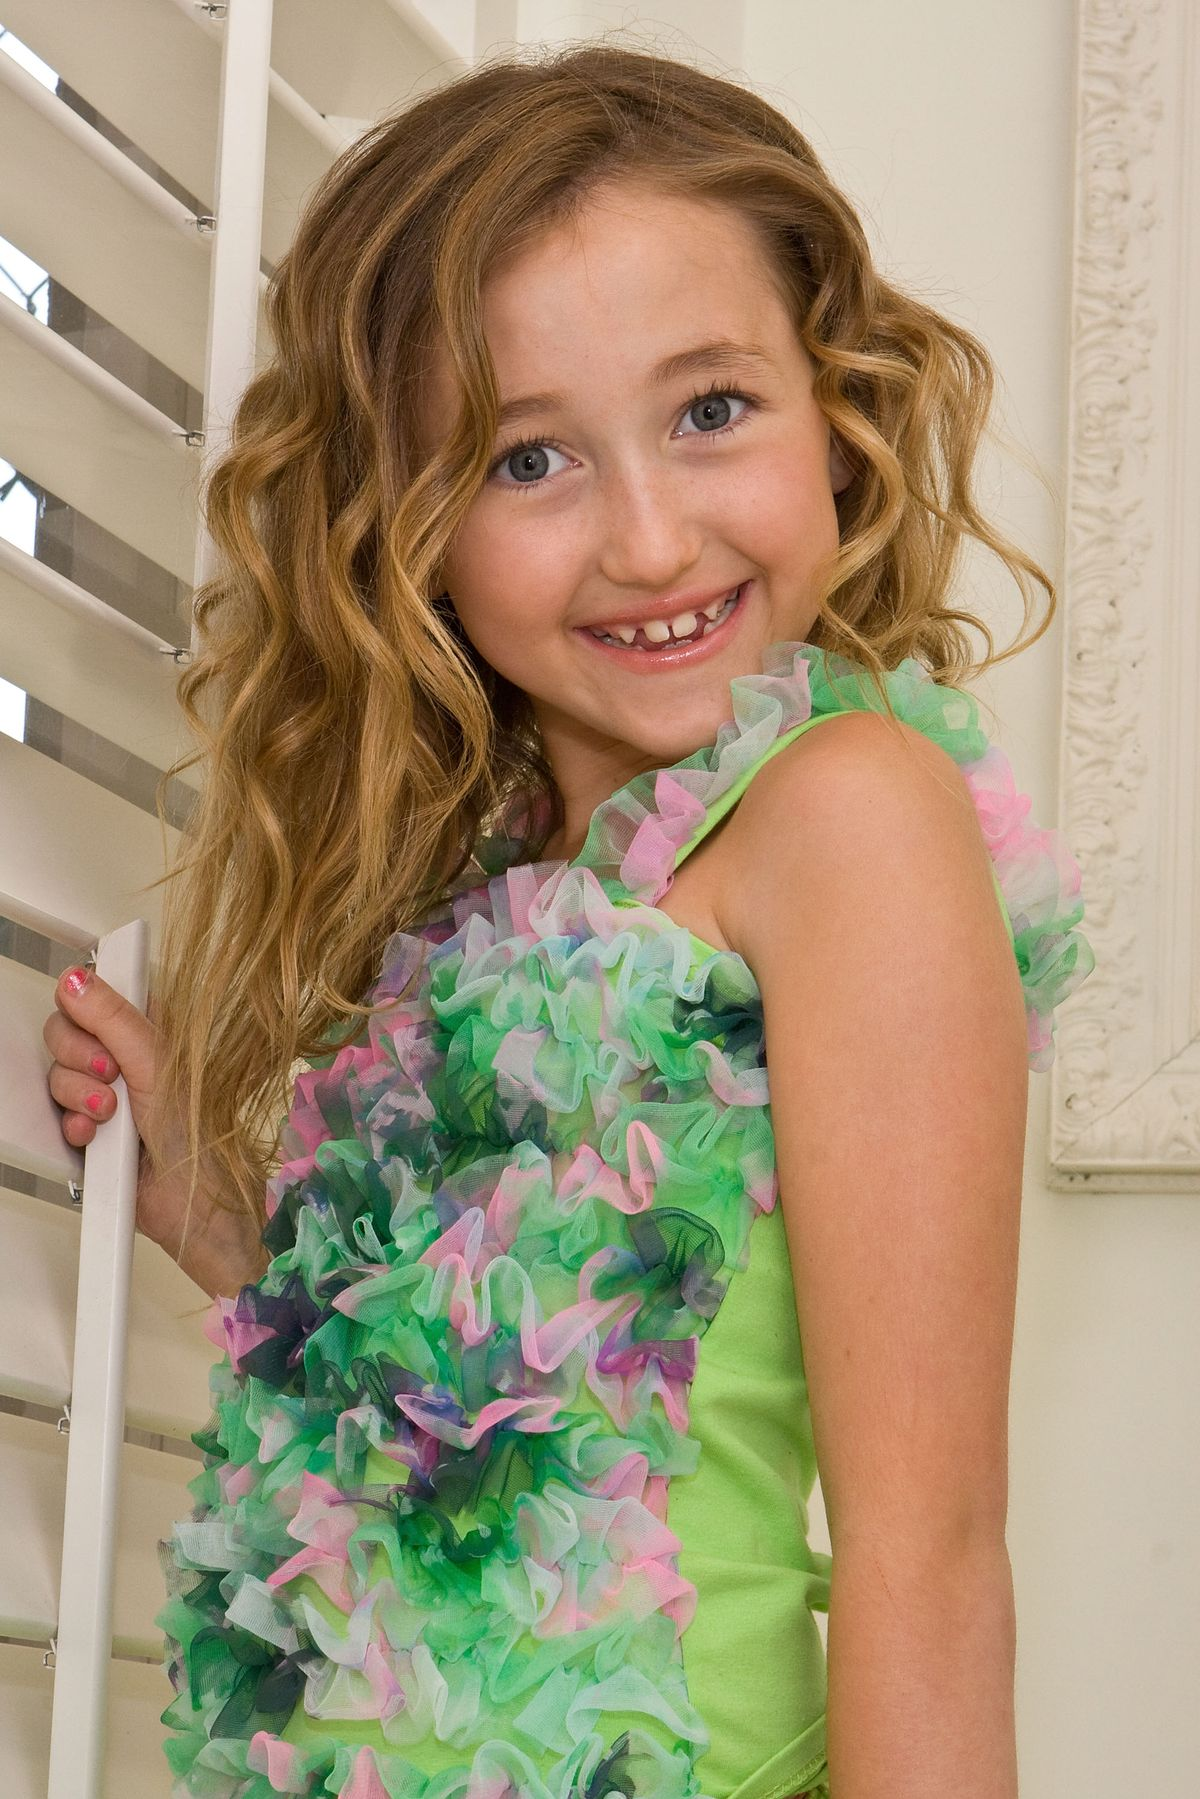 NORTH HOLLYWOOD, CA - APRIL 22: Actress Noah Cyrus poses at the official Lollipops and Rainbows Photo Shoot on April 22, 2009 in North Hollywood, California. (Photo by Chelsea Lauren/WireImage)